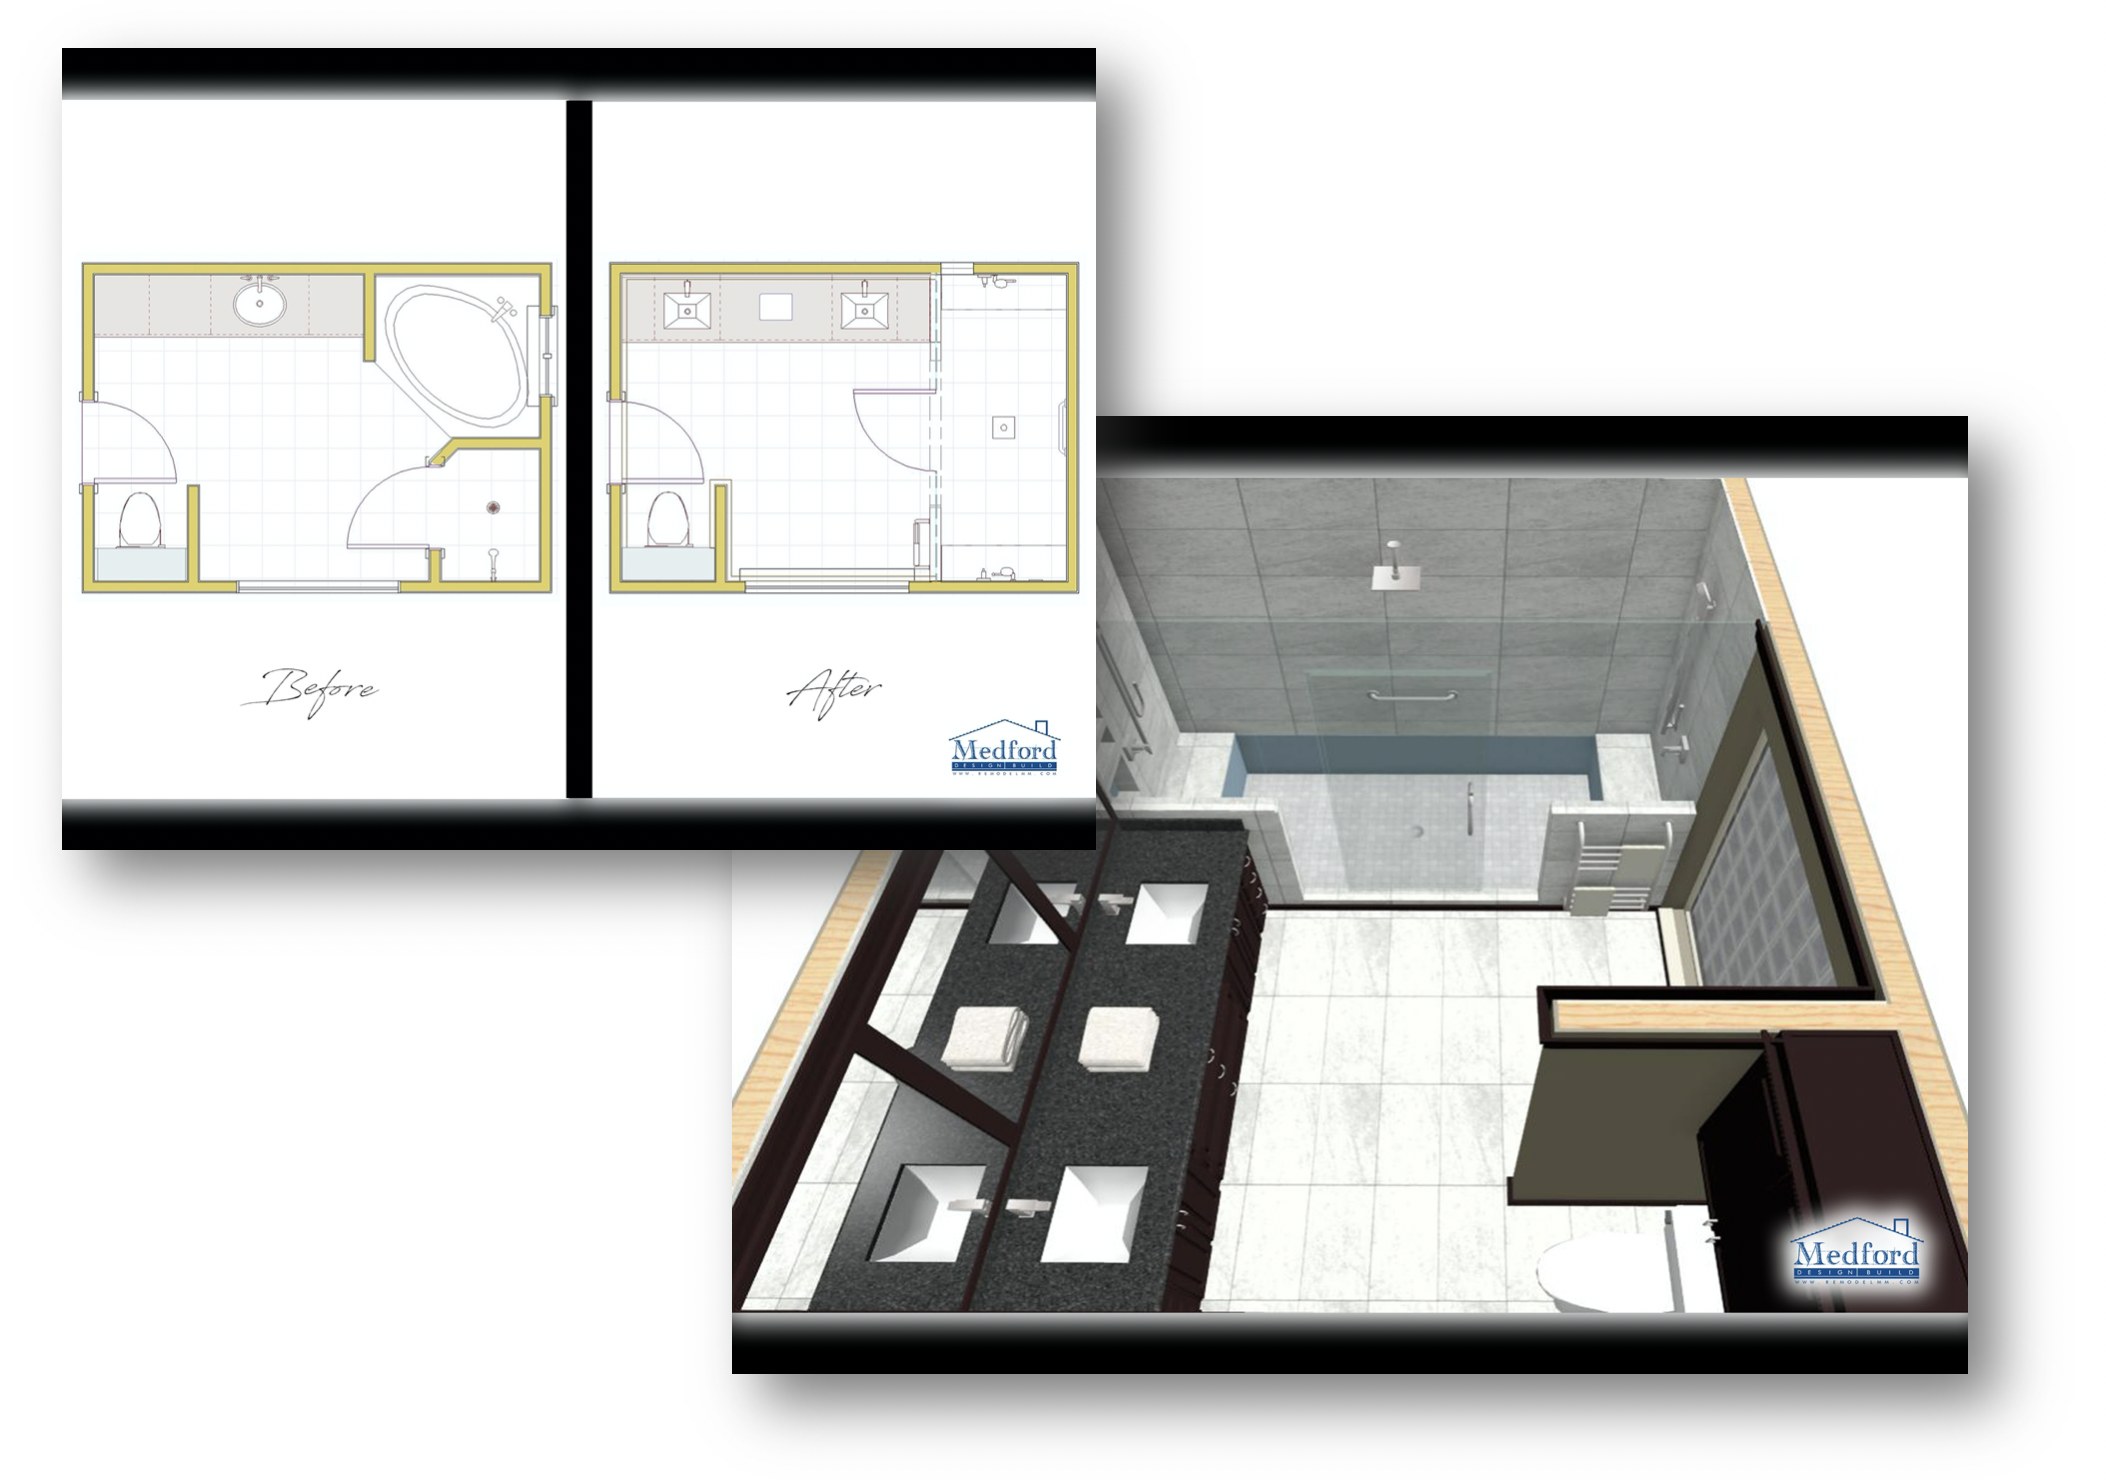 Bathroom remodel floor plans and 3D renderings